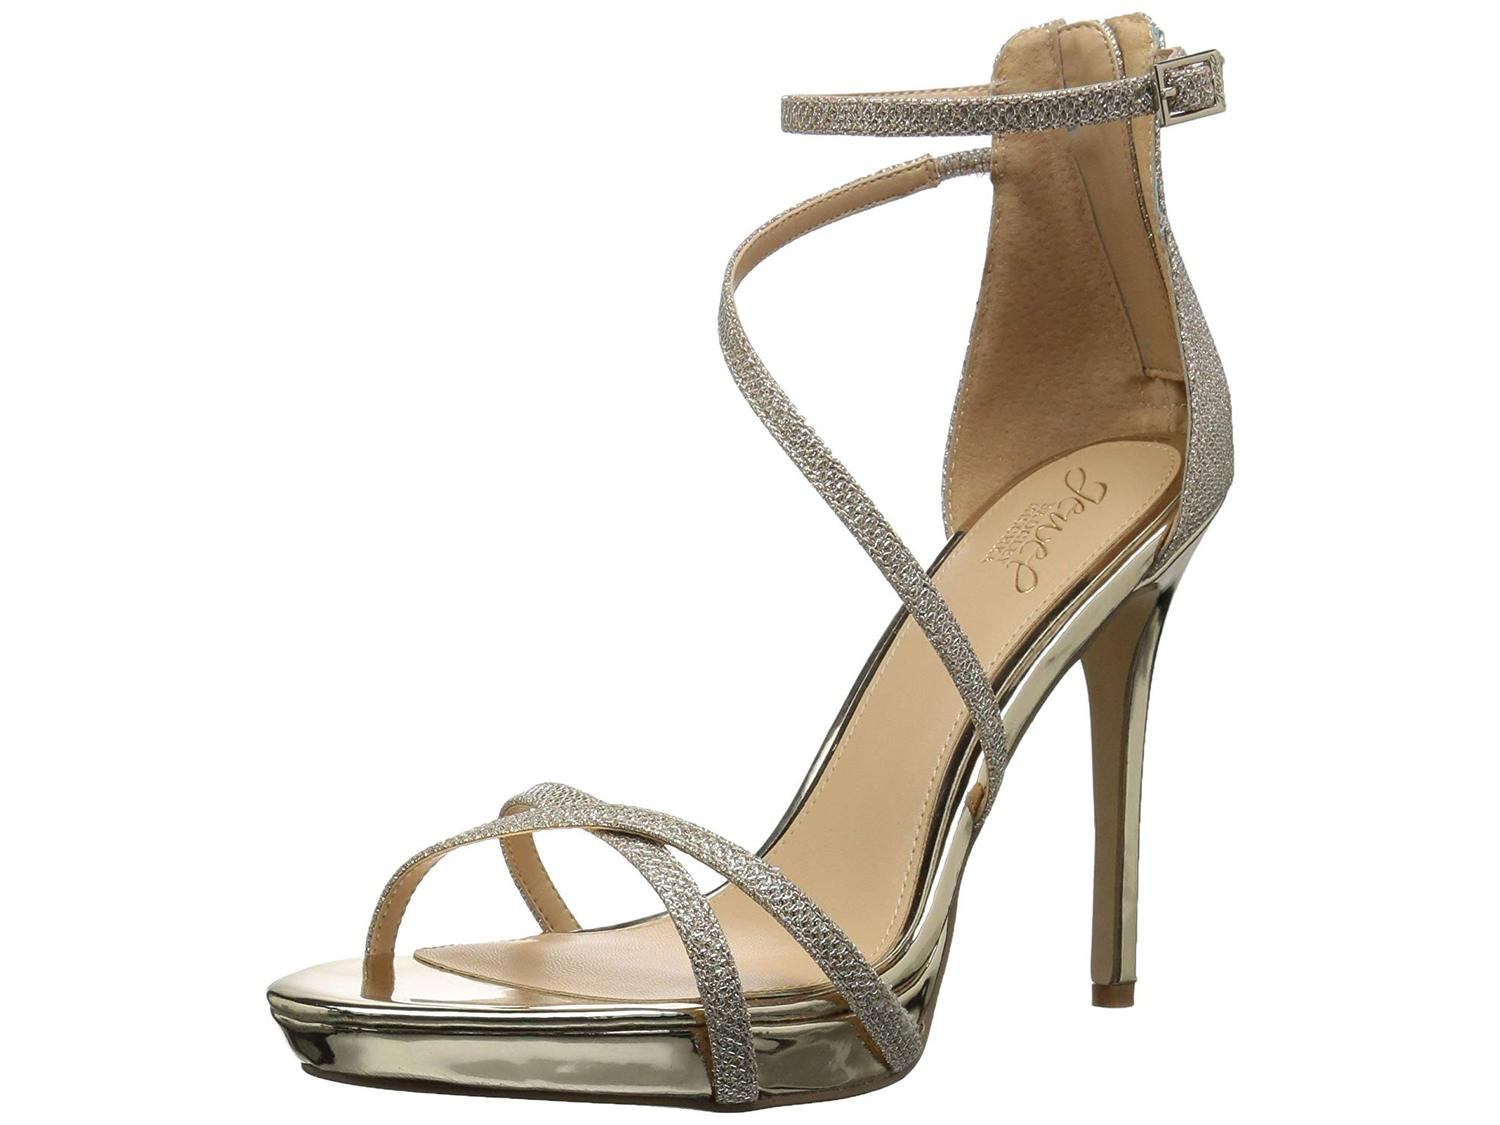 0b16729afa2 Badgley Mischka Womens Galen Open Toe Casual Ankle Strap